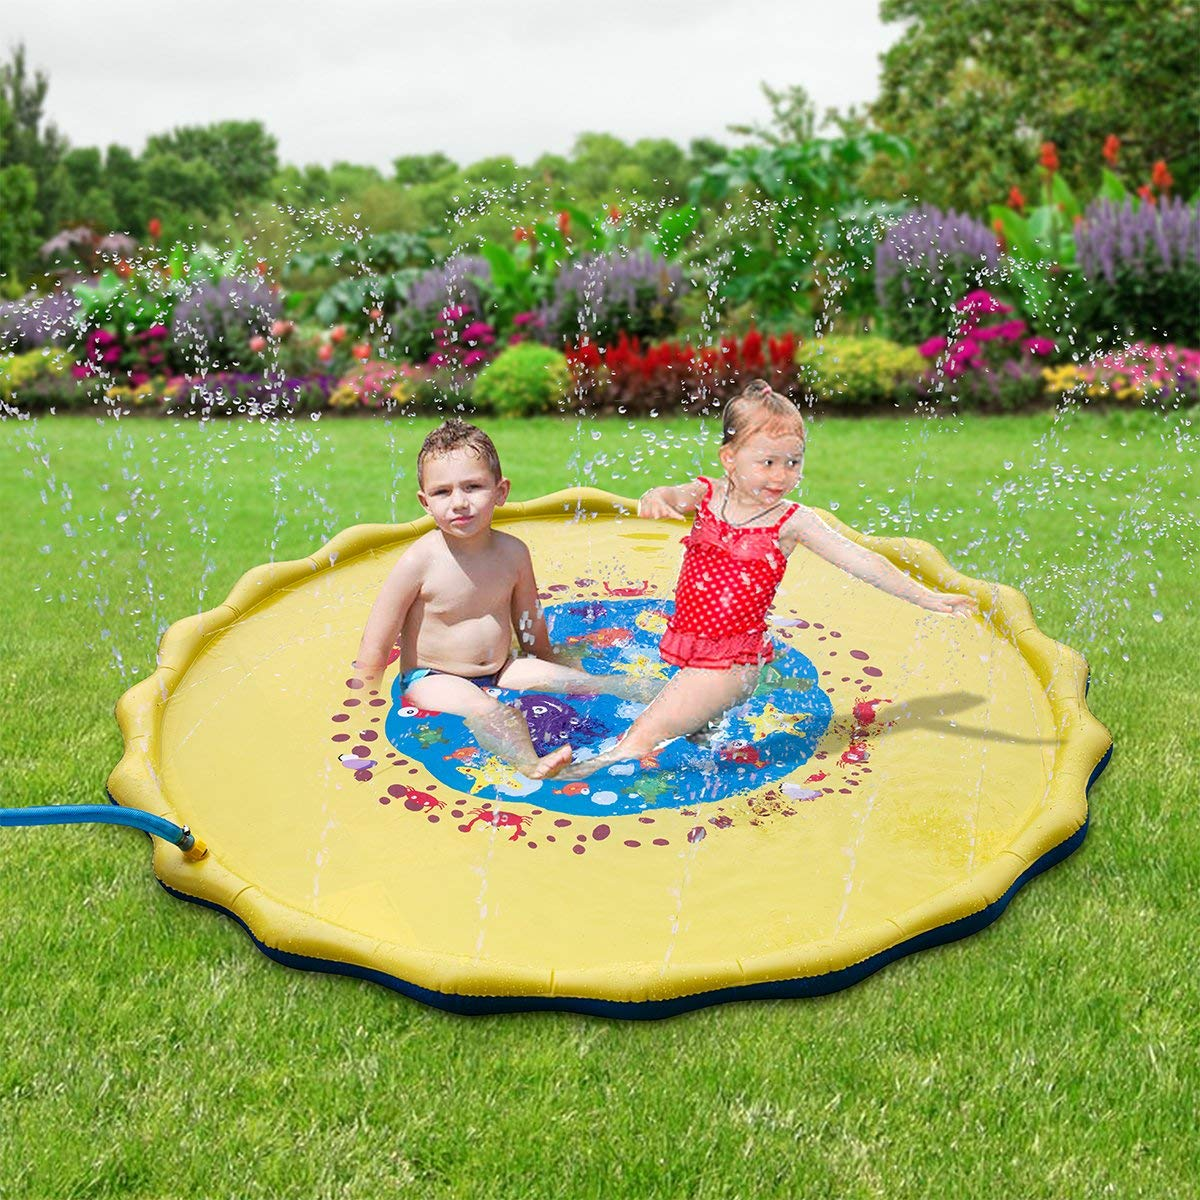 170 CM Sprinkle and Splash Play Mat children's water sprinkler